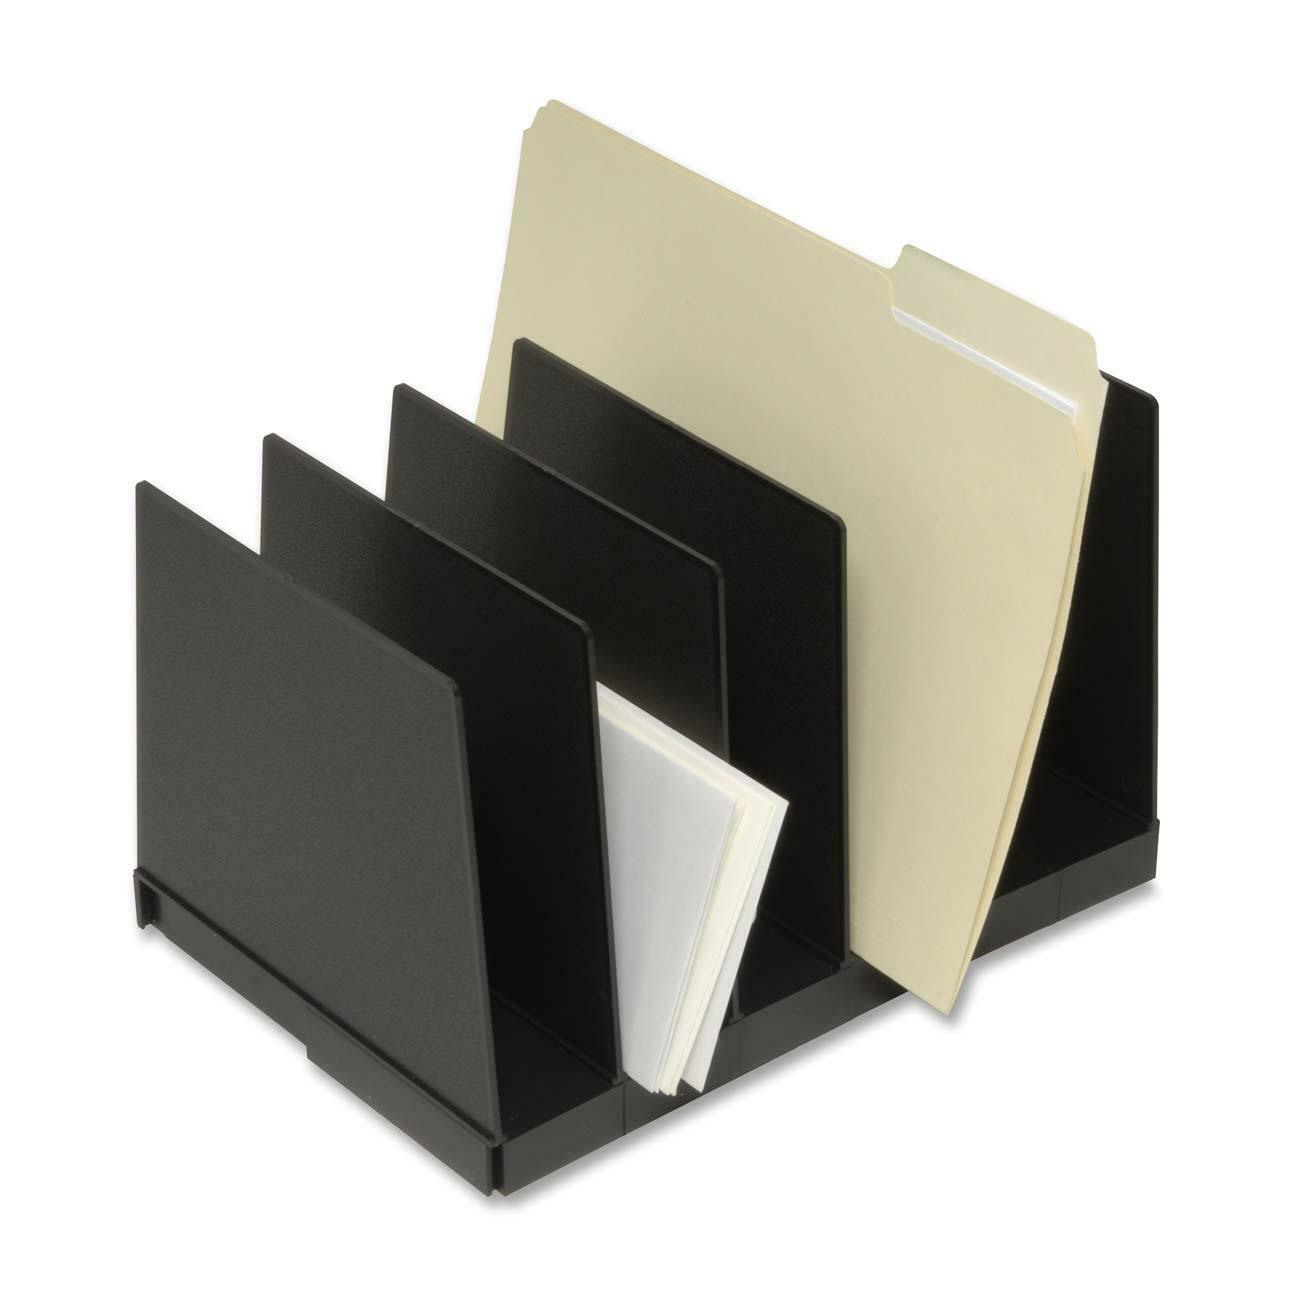 Korr Expand A File Desktop Organizer 6 Compartment S 2 50 80 Mm 8 5 Height X 12 Width Depth Recycled Black Plastic 1set